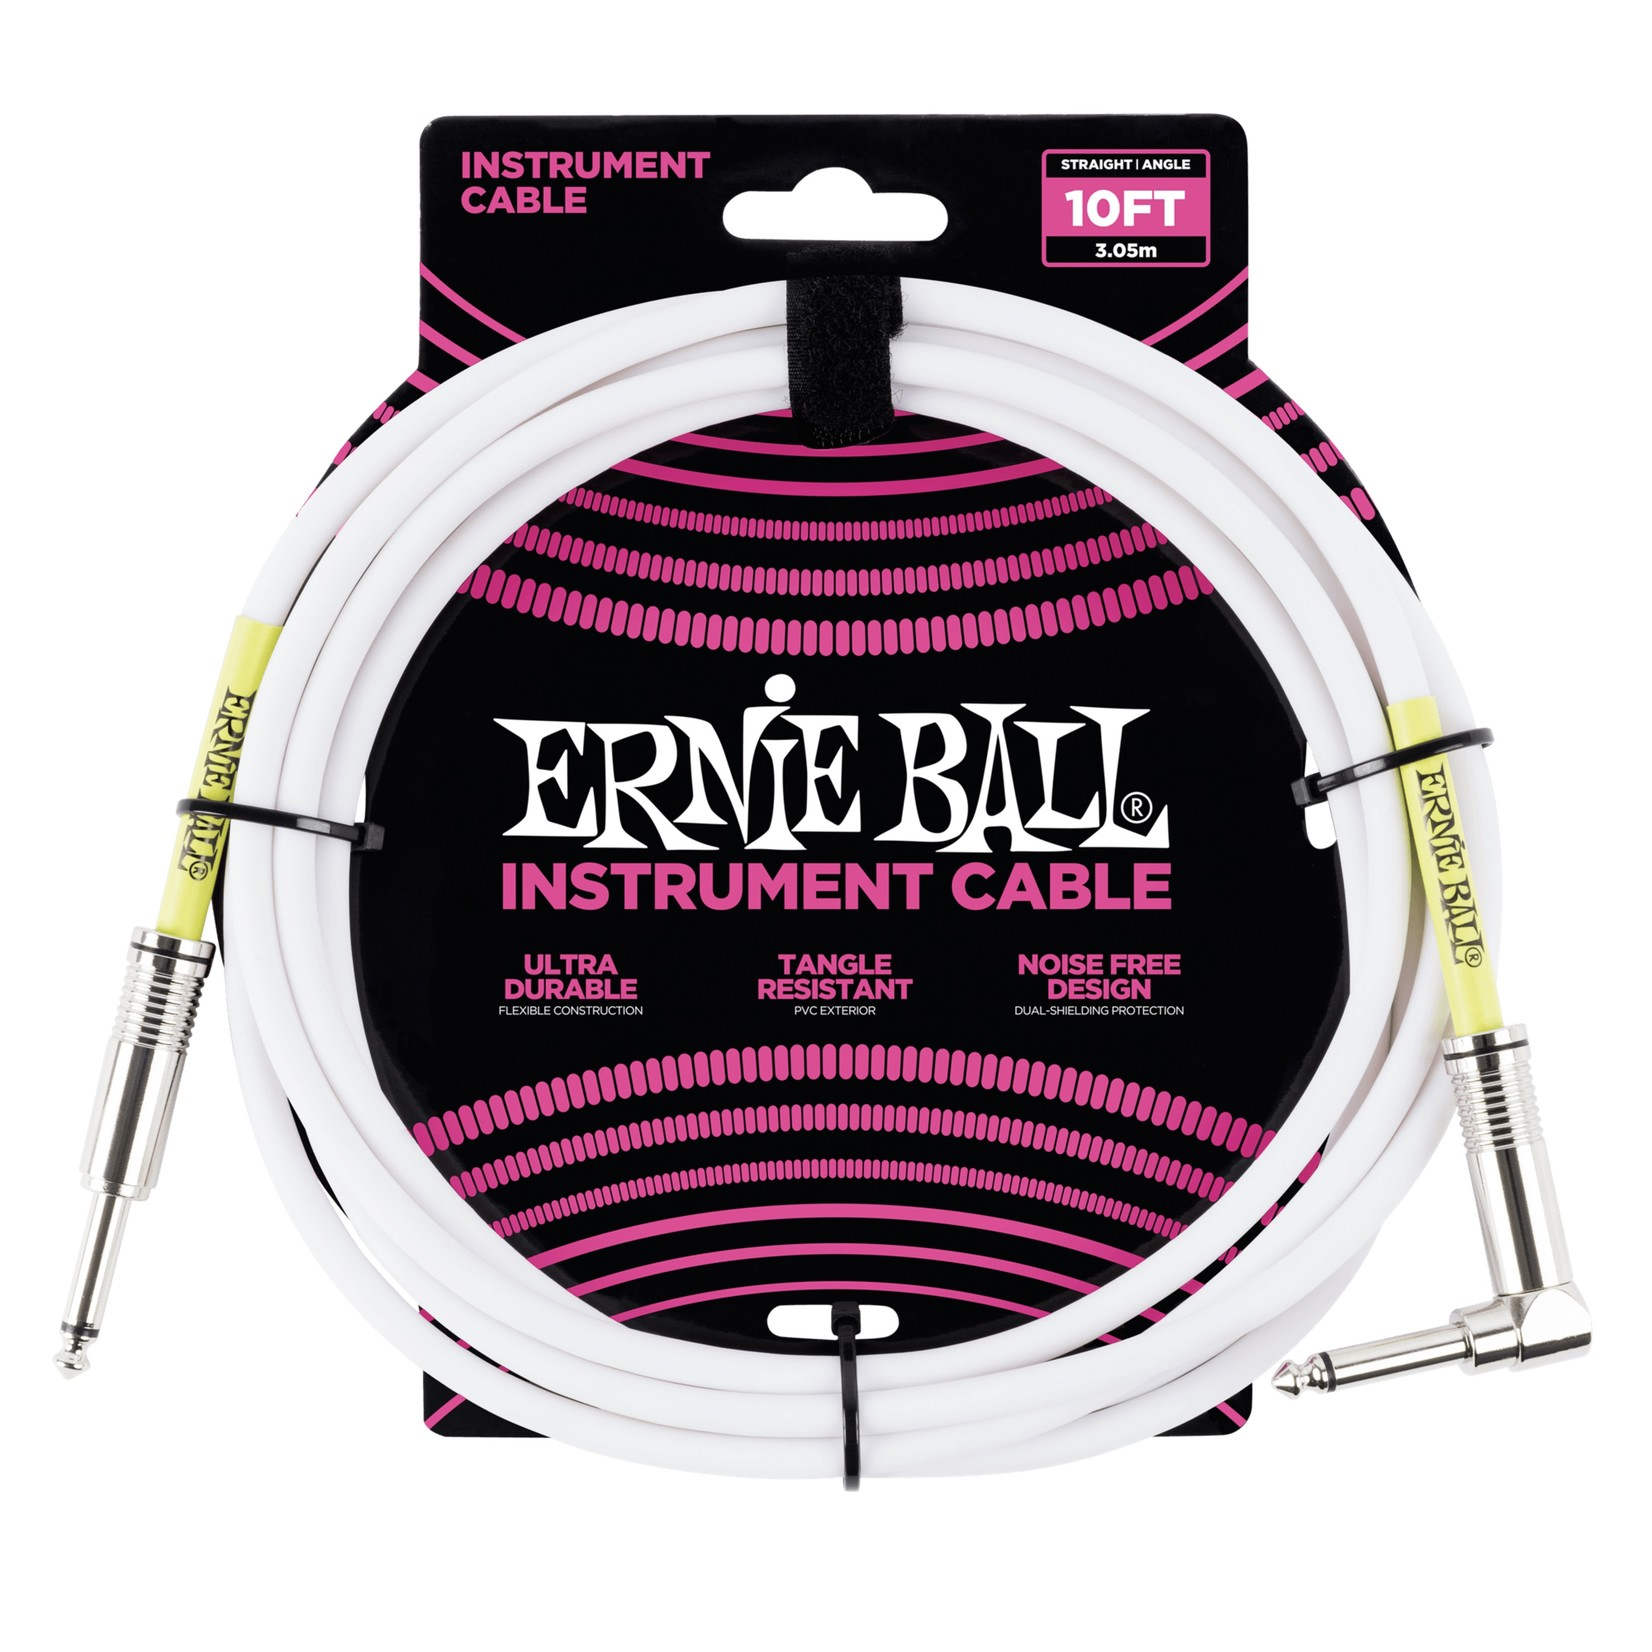 """Ernie Ball Ernie Ball 10' 1/4"""" Straight / Angle Instrument Cable - White (10-foot)"""